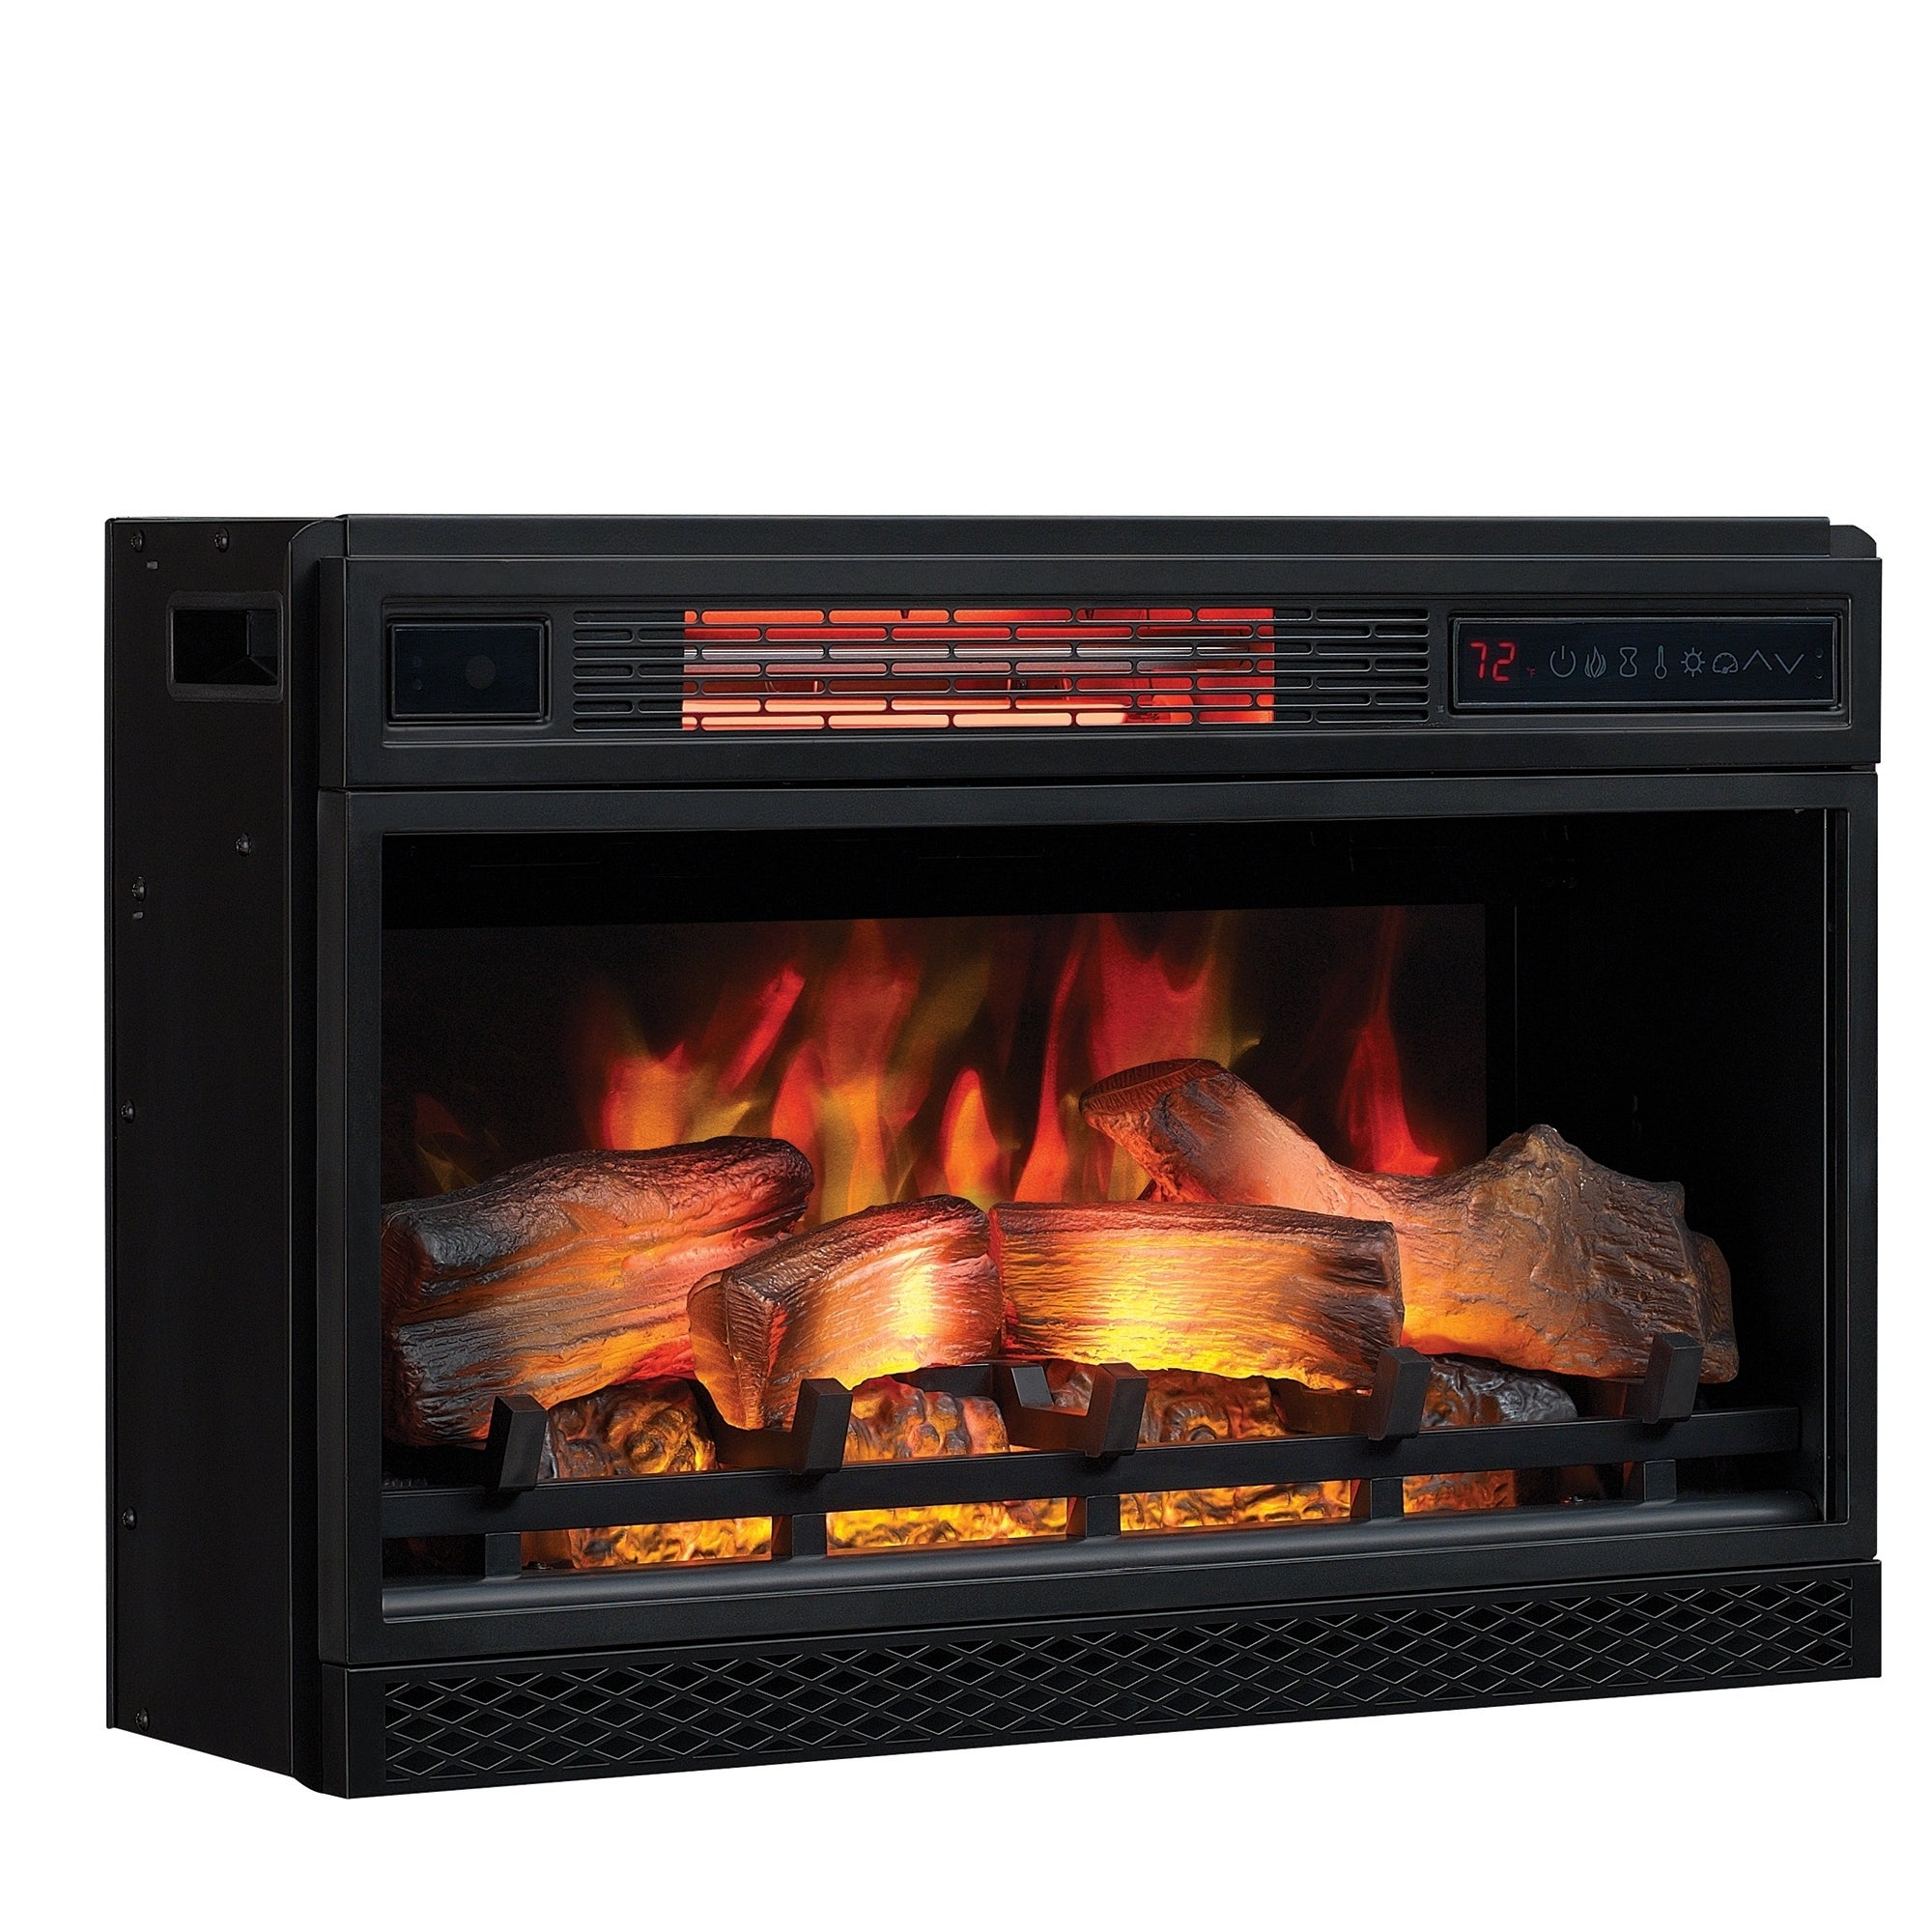 ClassicFlame 26 3D Infrared Quartz Electric Fireplace Insert f70 bc46 40d2 a7c6 afc8db79d6cc